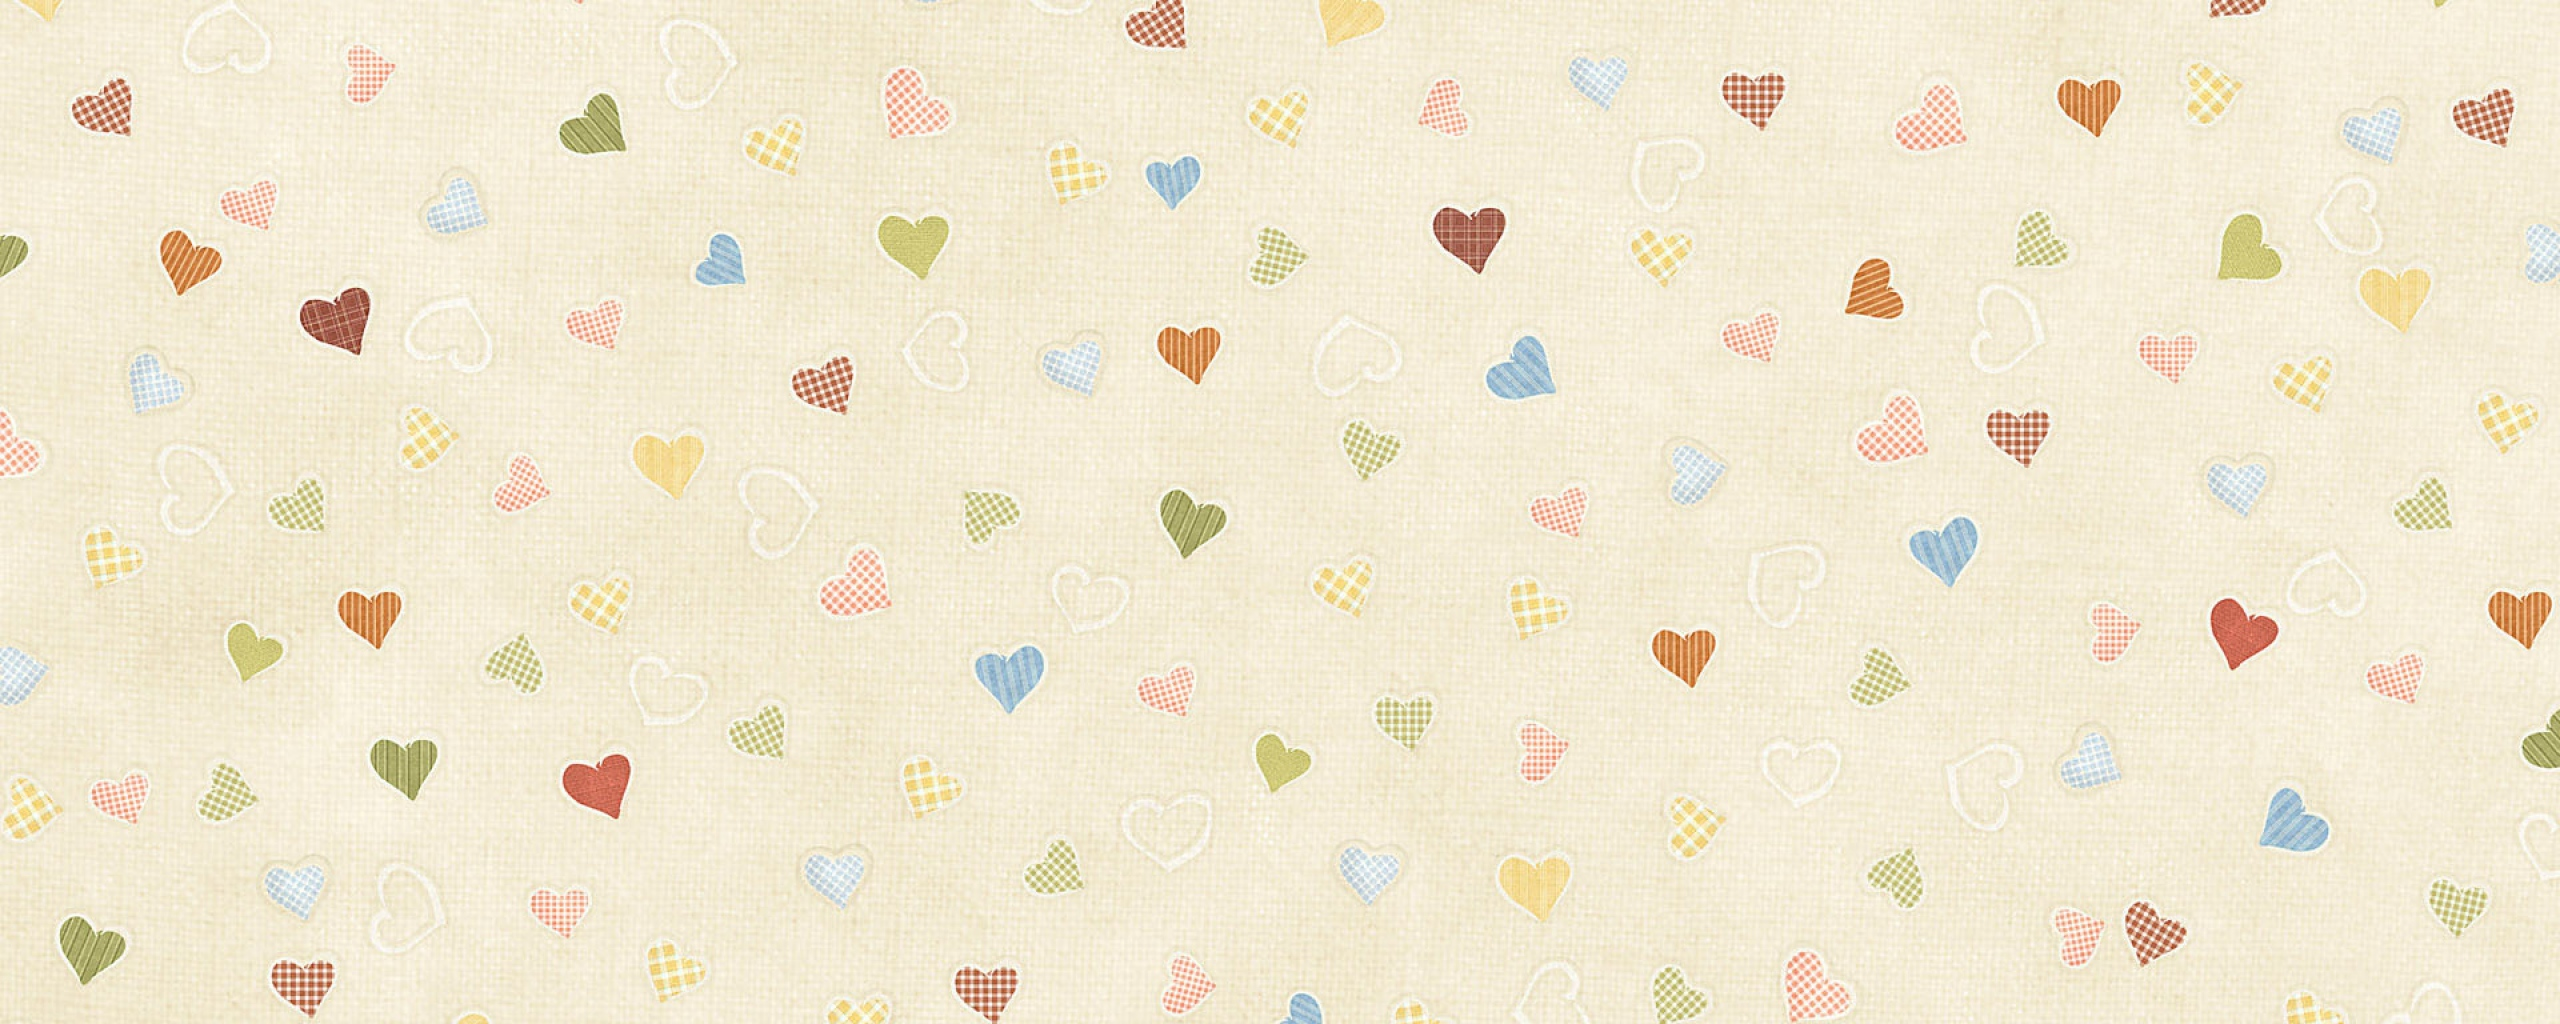 colorful hearts baby image hd